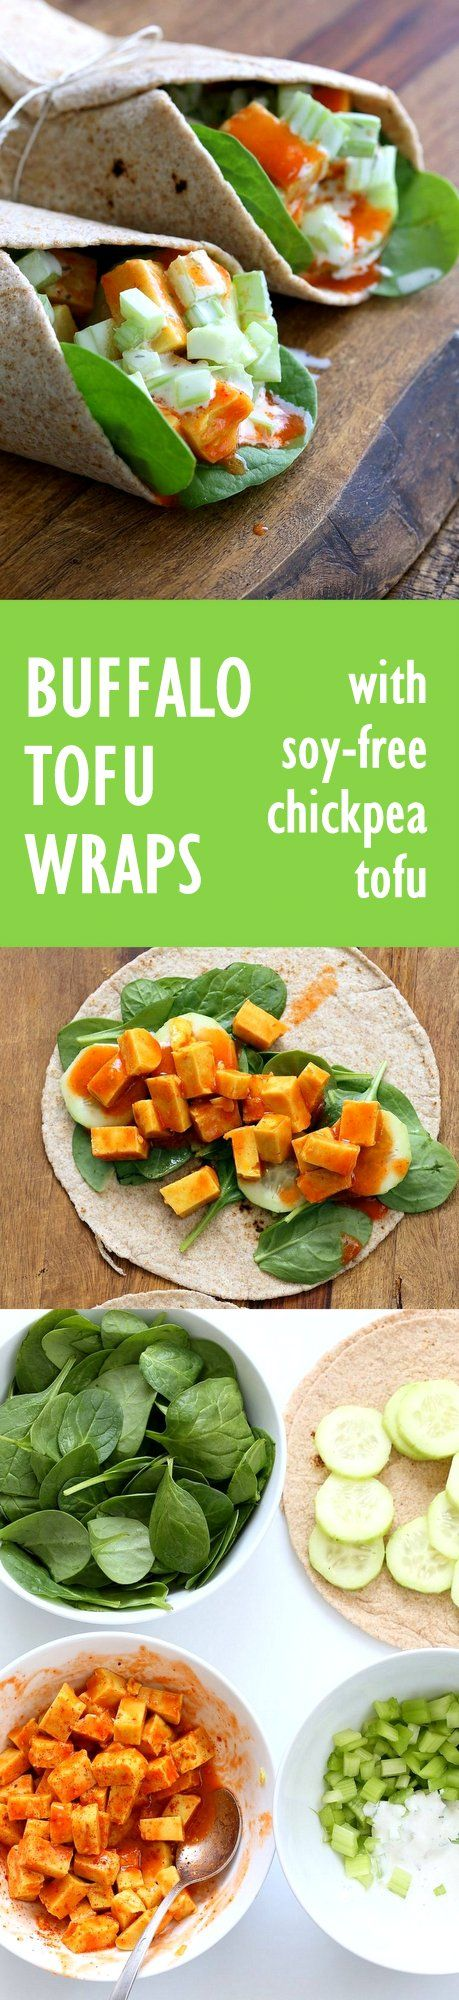 Buffalo Tofu wrap with Chickpea Tofu. Soy-free Chickpea flour Tofu tossed in buffalo hot sauce, layered with celery, spinach, cucumbers and vegan ranch.